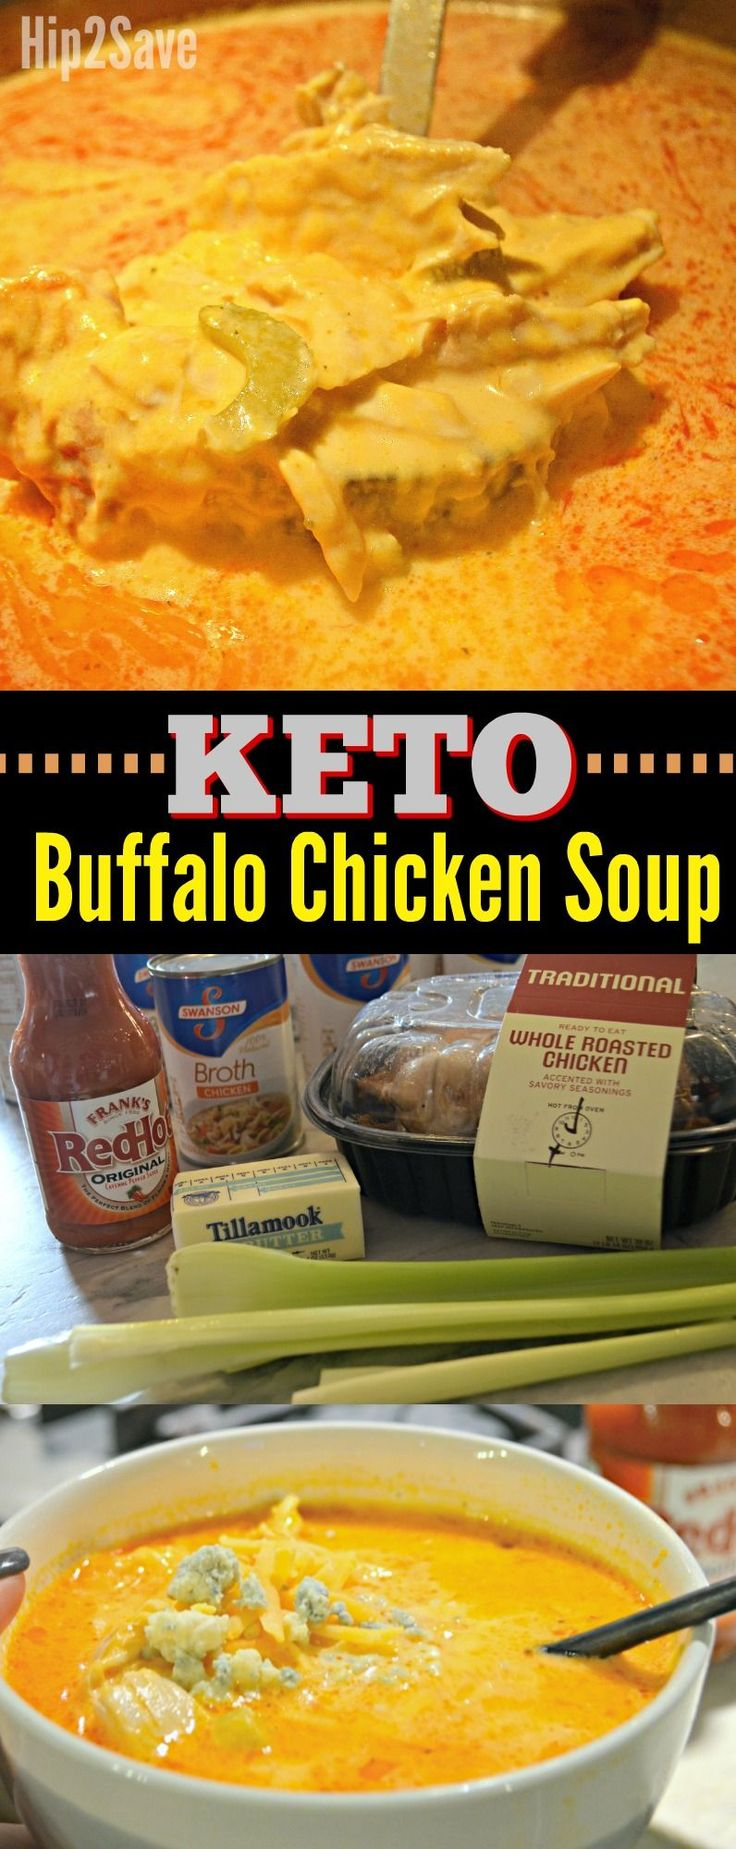 Grab some hot sauce and make this delicious tangy and cheesy Buffalo Chicken soup for dinner!